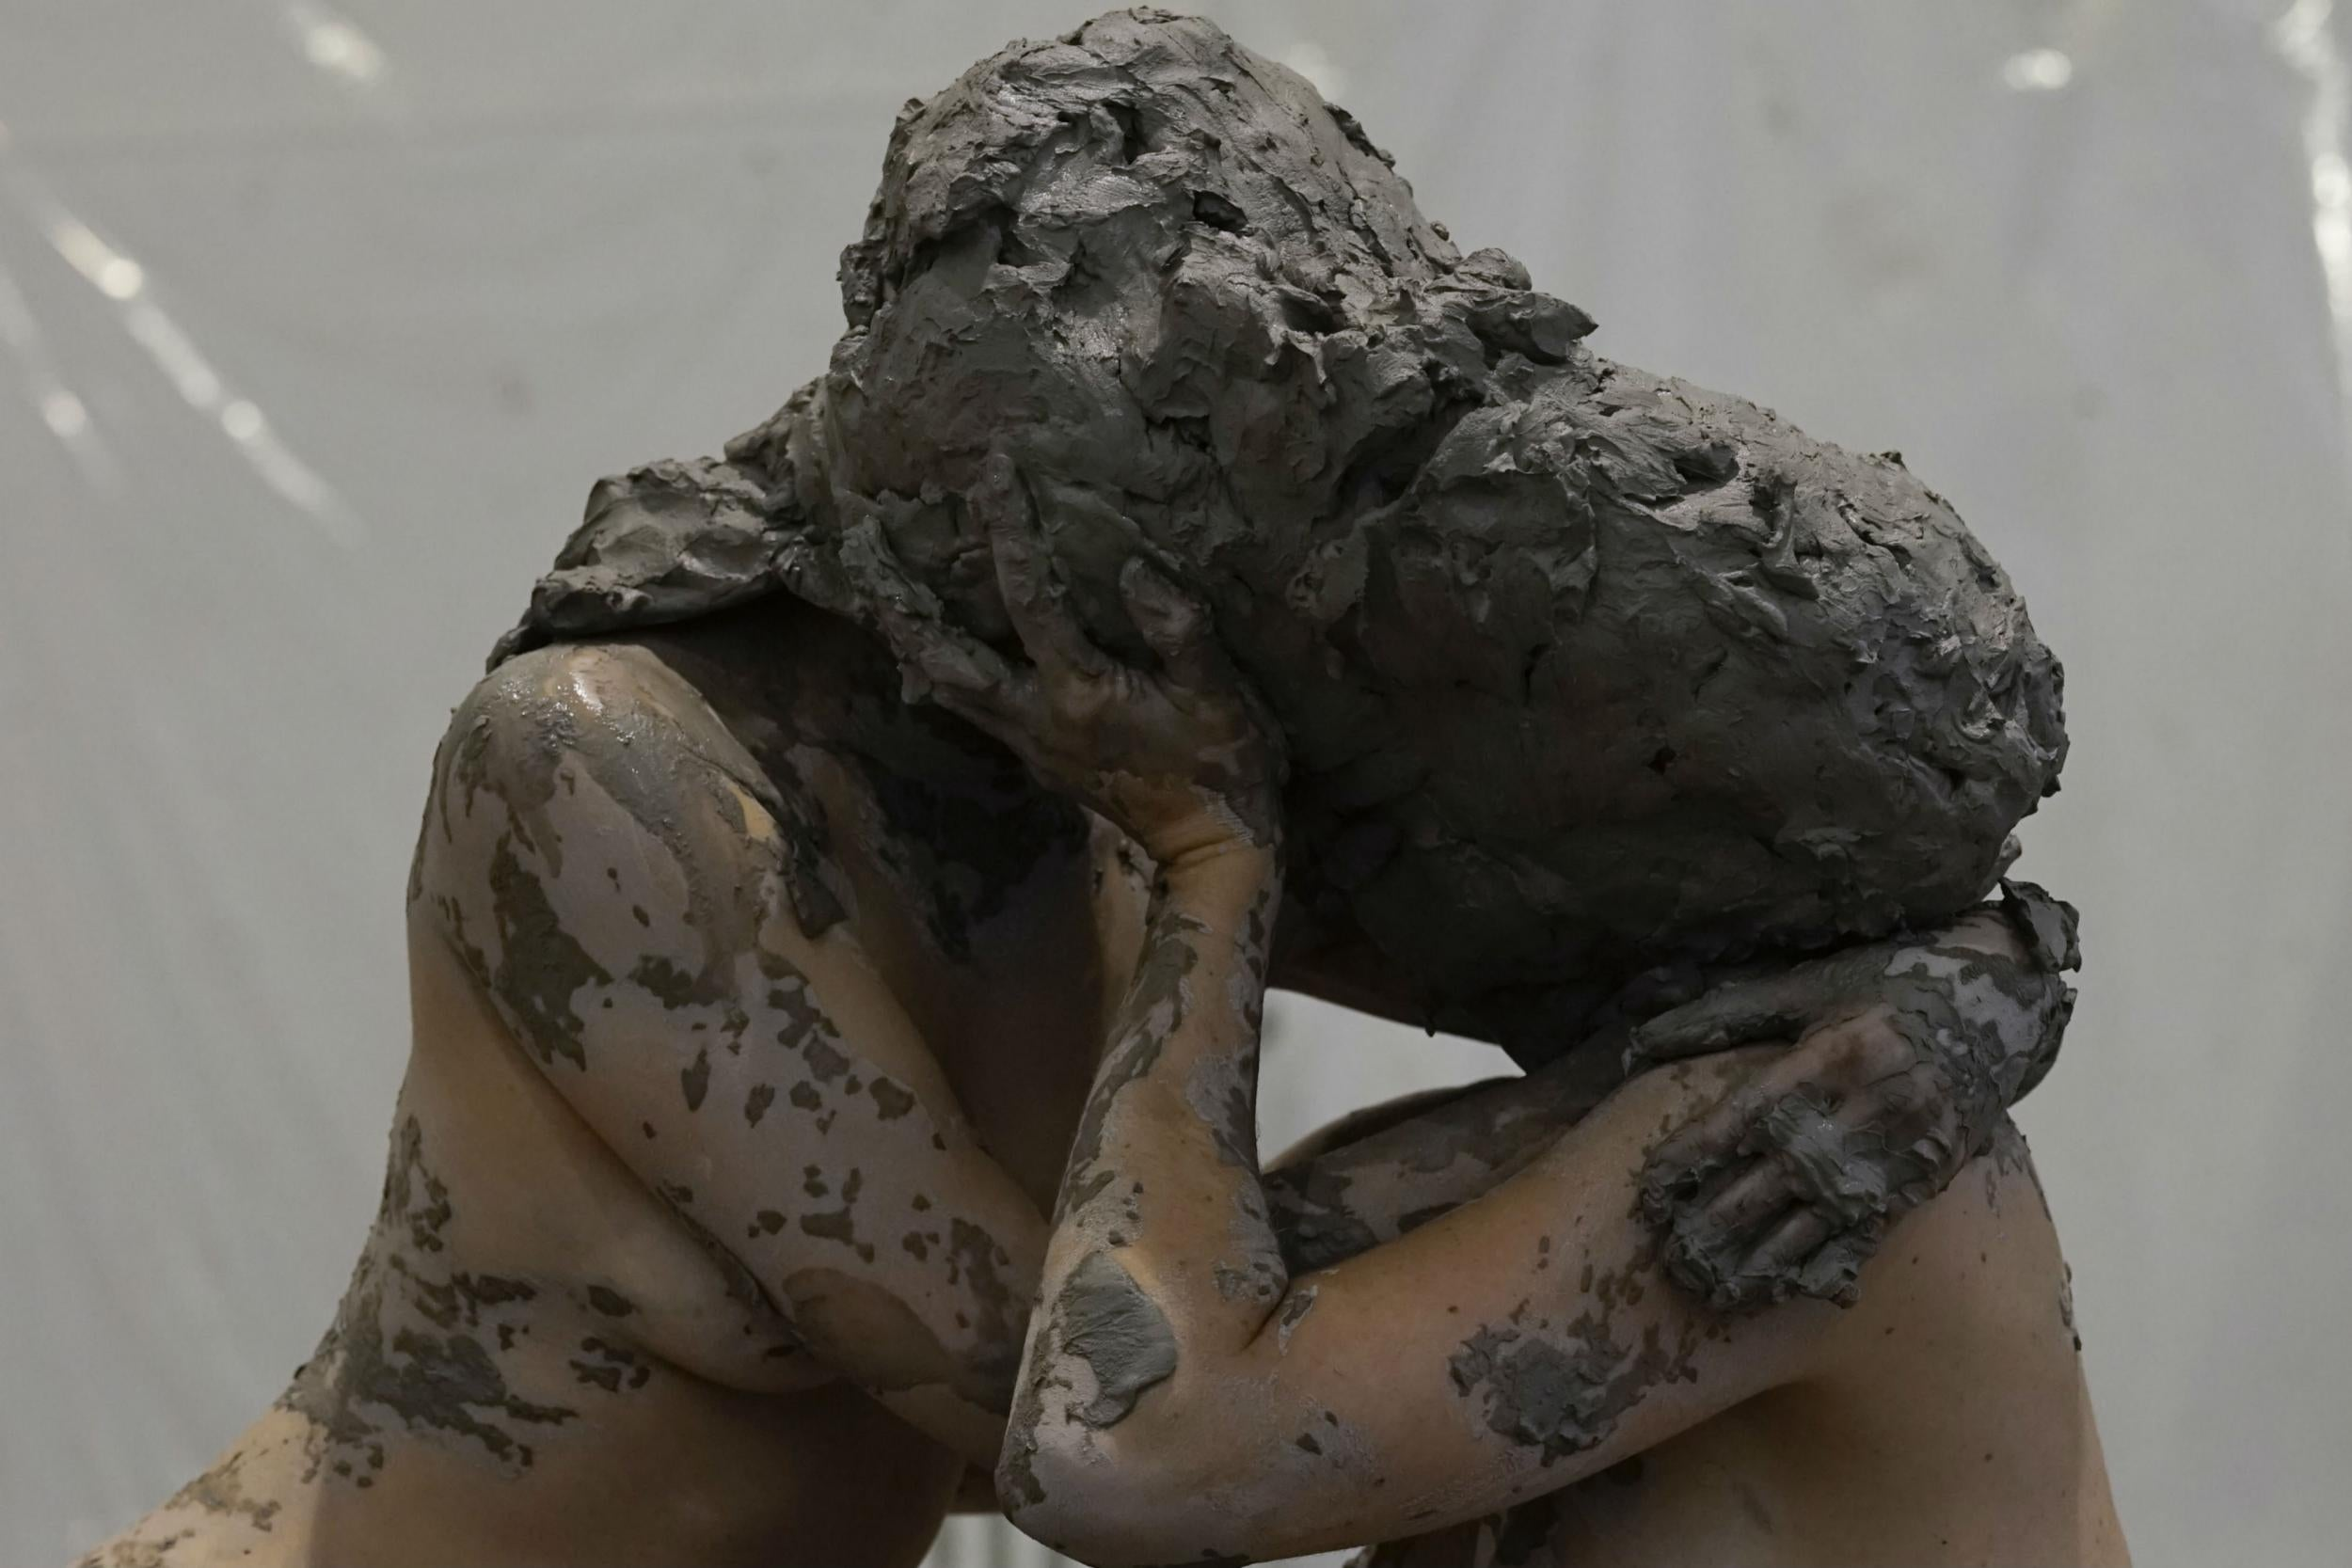 Leaping around naked in clay, painting her girlfriend's vulva... Meet Florence Peake – 'the Lena Dunham of art'